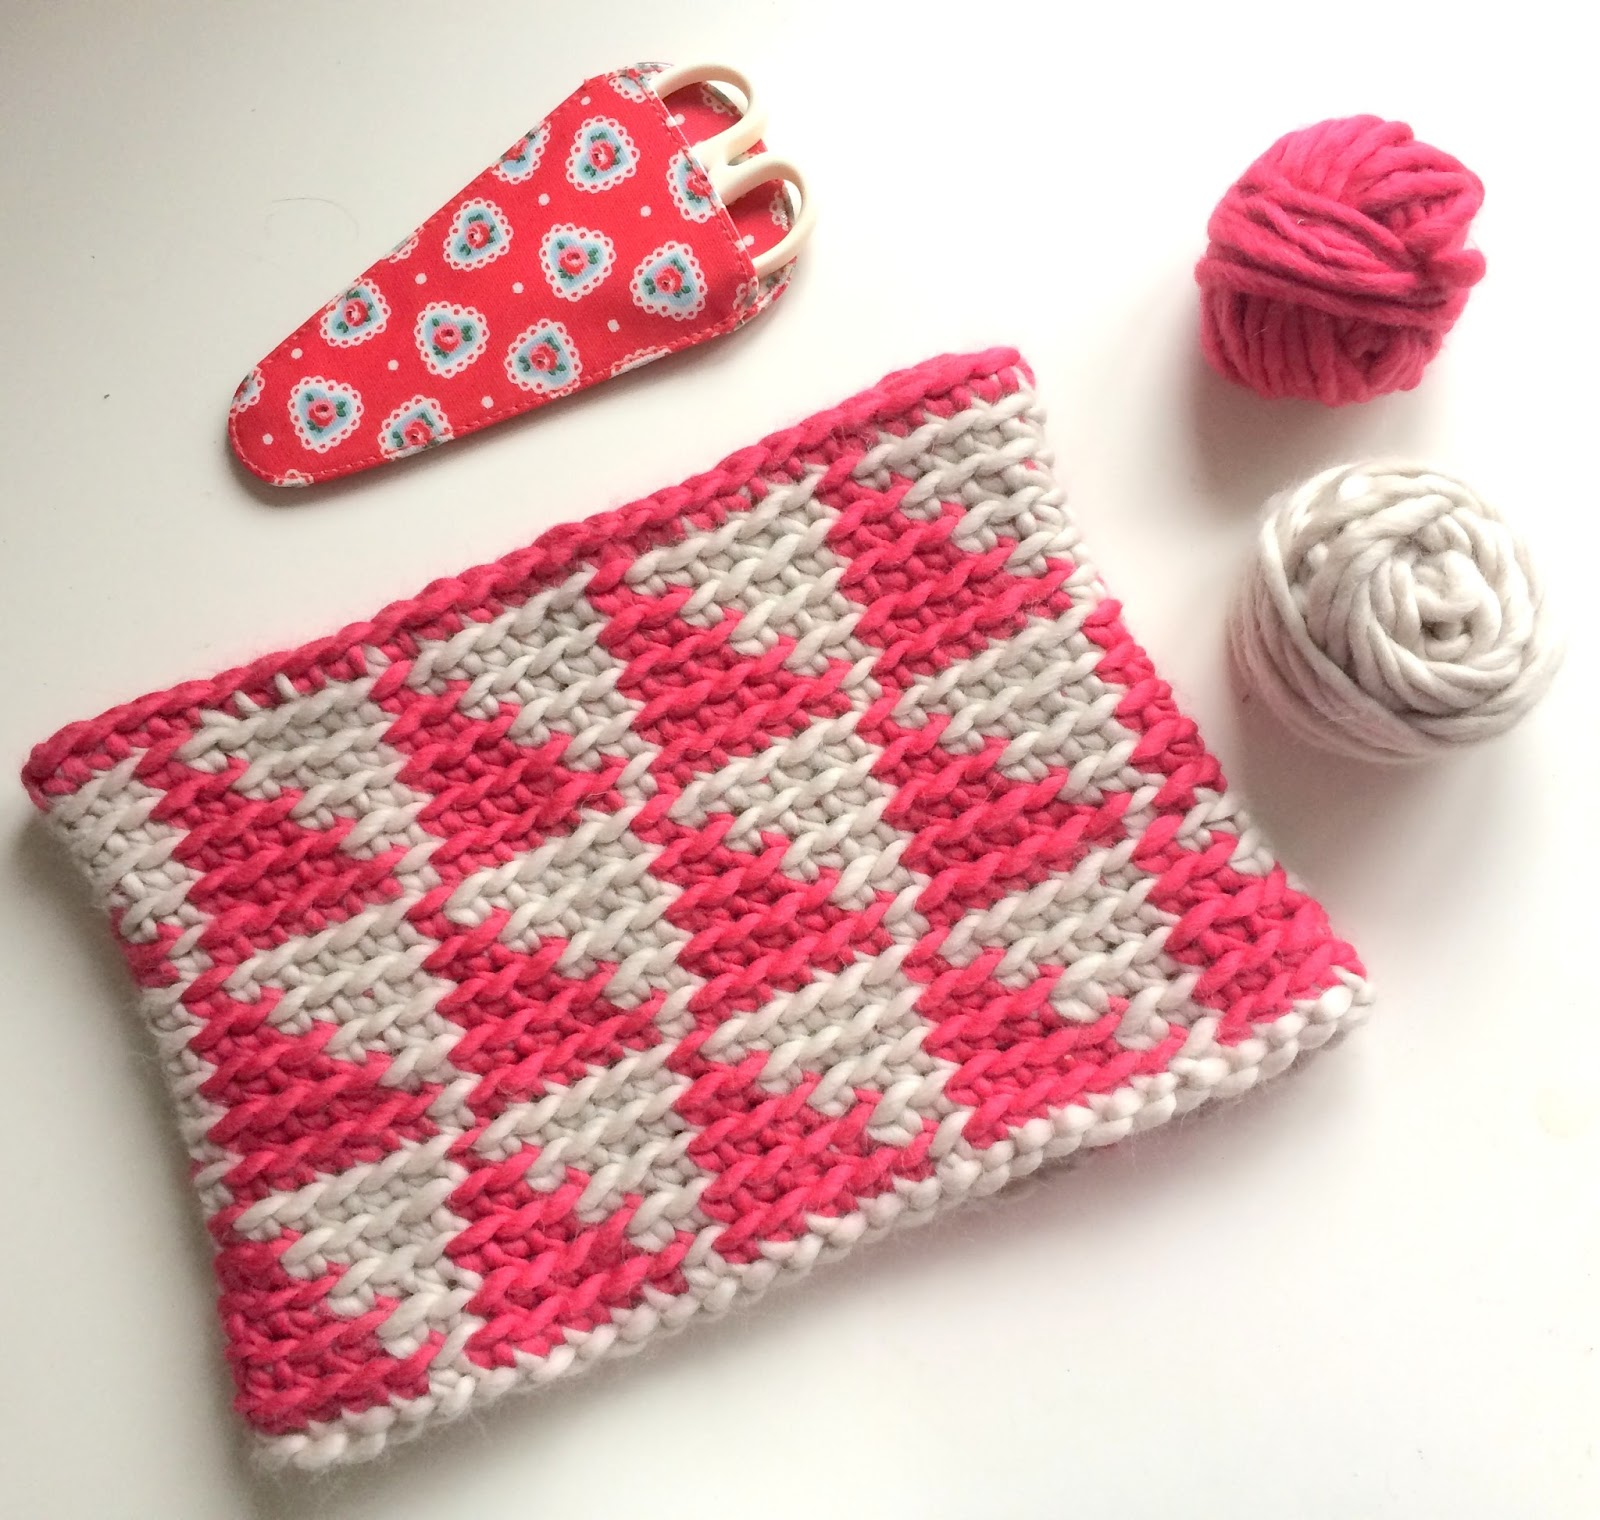 Little Crochet Geometric Shapes Cowl